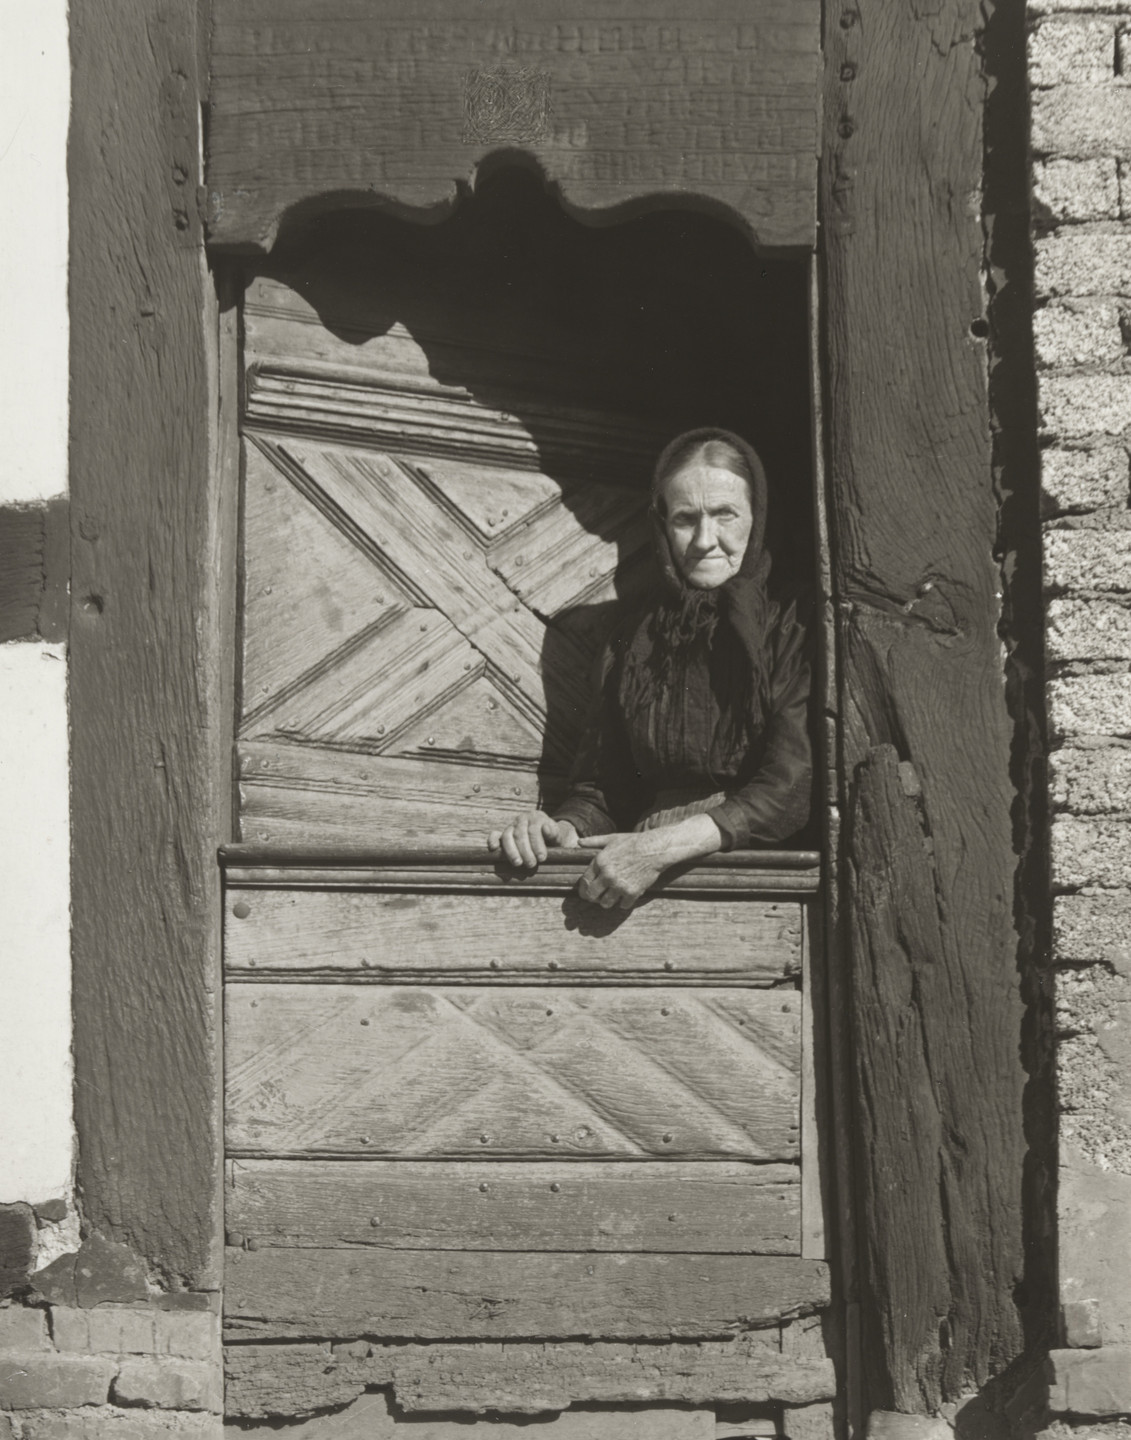 August Sander. Farmer's Wife from the Sieg Valley. c. 1930